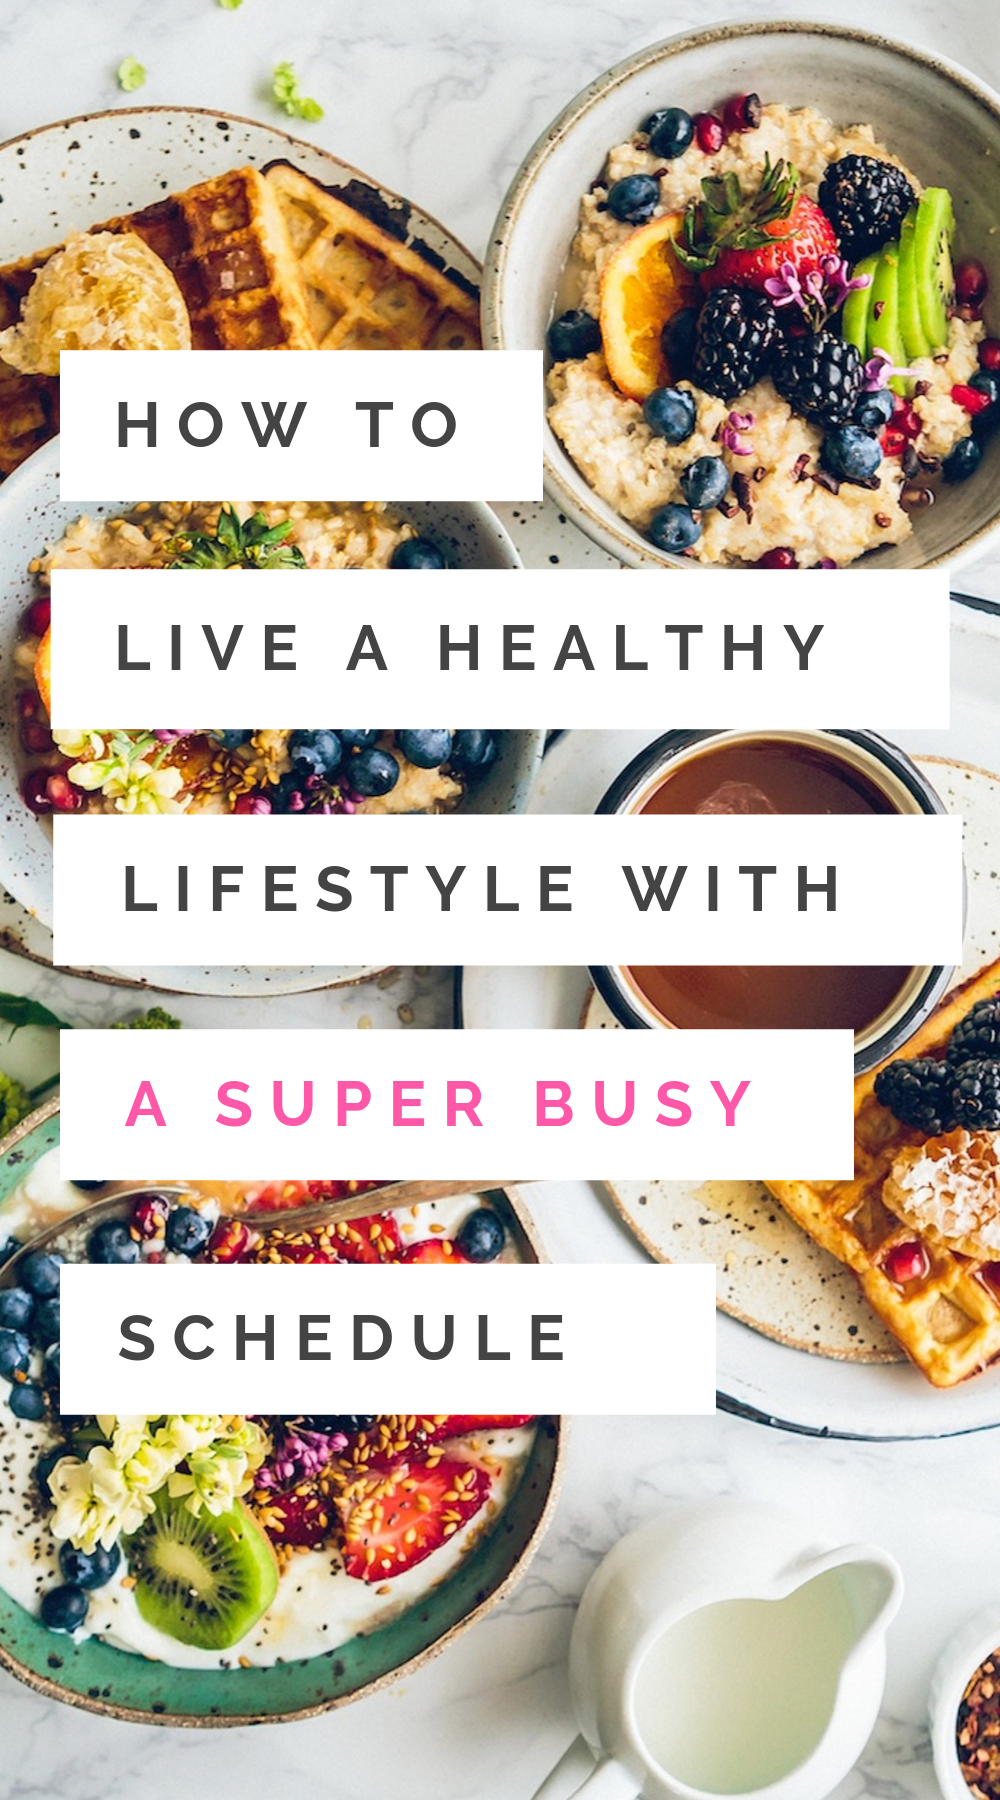 These helpful healthy lifestyle tips will give you the motivation to live a healthy life - even when you're super busy. Whether you're meal prepping or making healthy snacks, we're covering everything from exercise and fitness hacks to help you lose weight and live your best life! #healthylifestyle #healthyliving #healthandwellness #wellness #fitness #exercise #fitnesstips #healthyeating